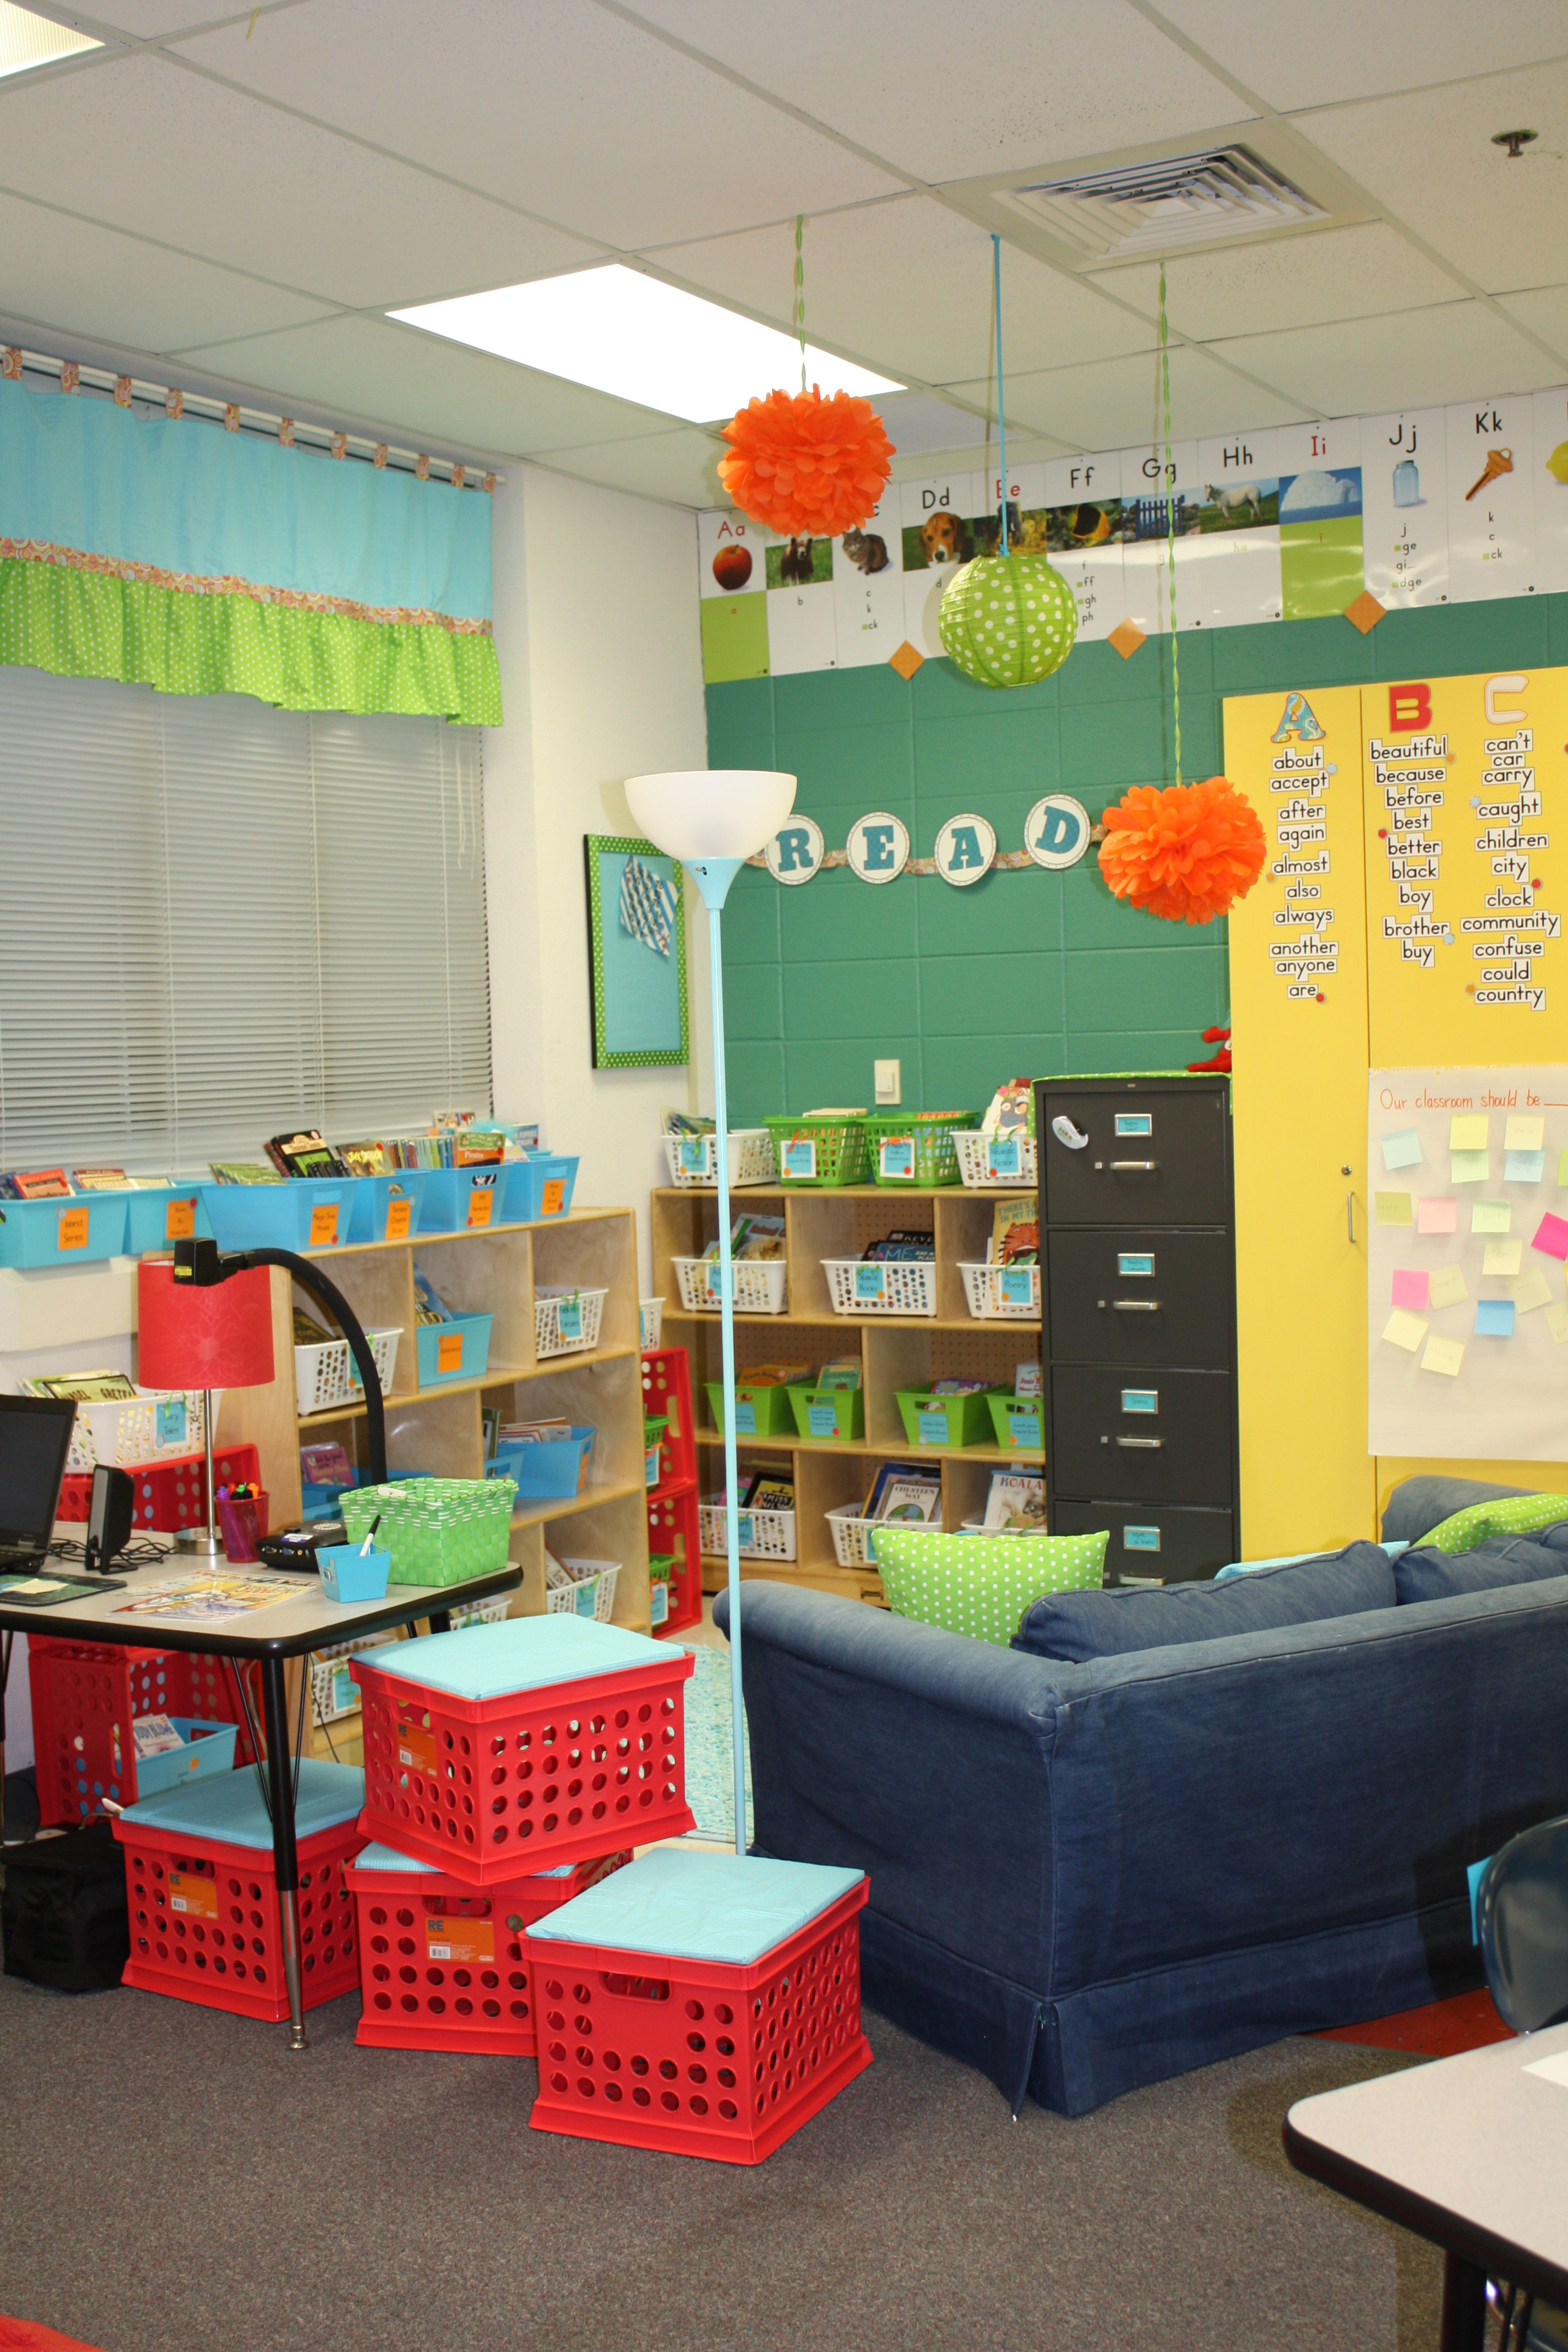 Second Home Decorating Ideas: Second+grade+classroom.++Lots+of+cute+ideas+for+decorating+your+classroom+to+make+it+cozy!+ From